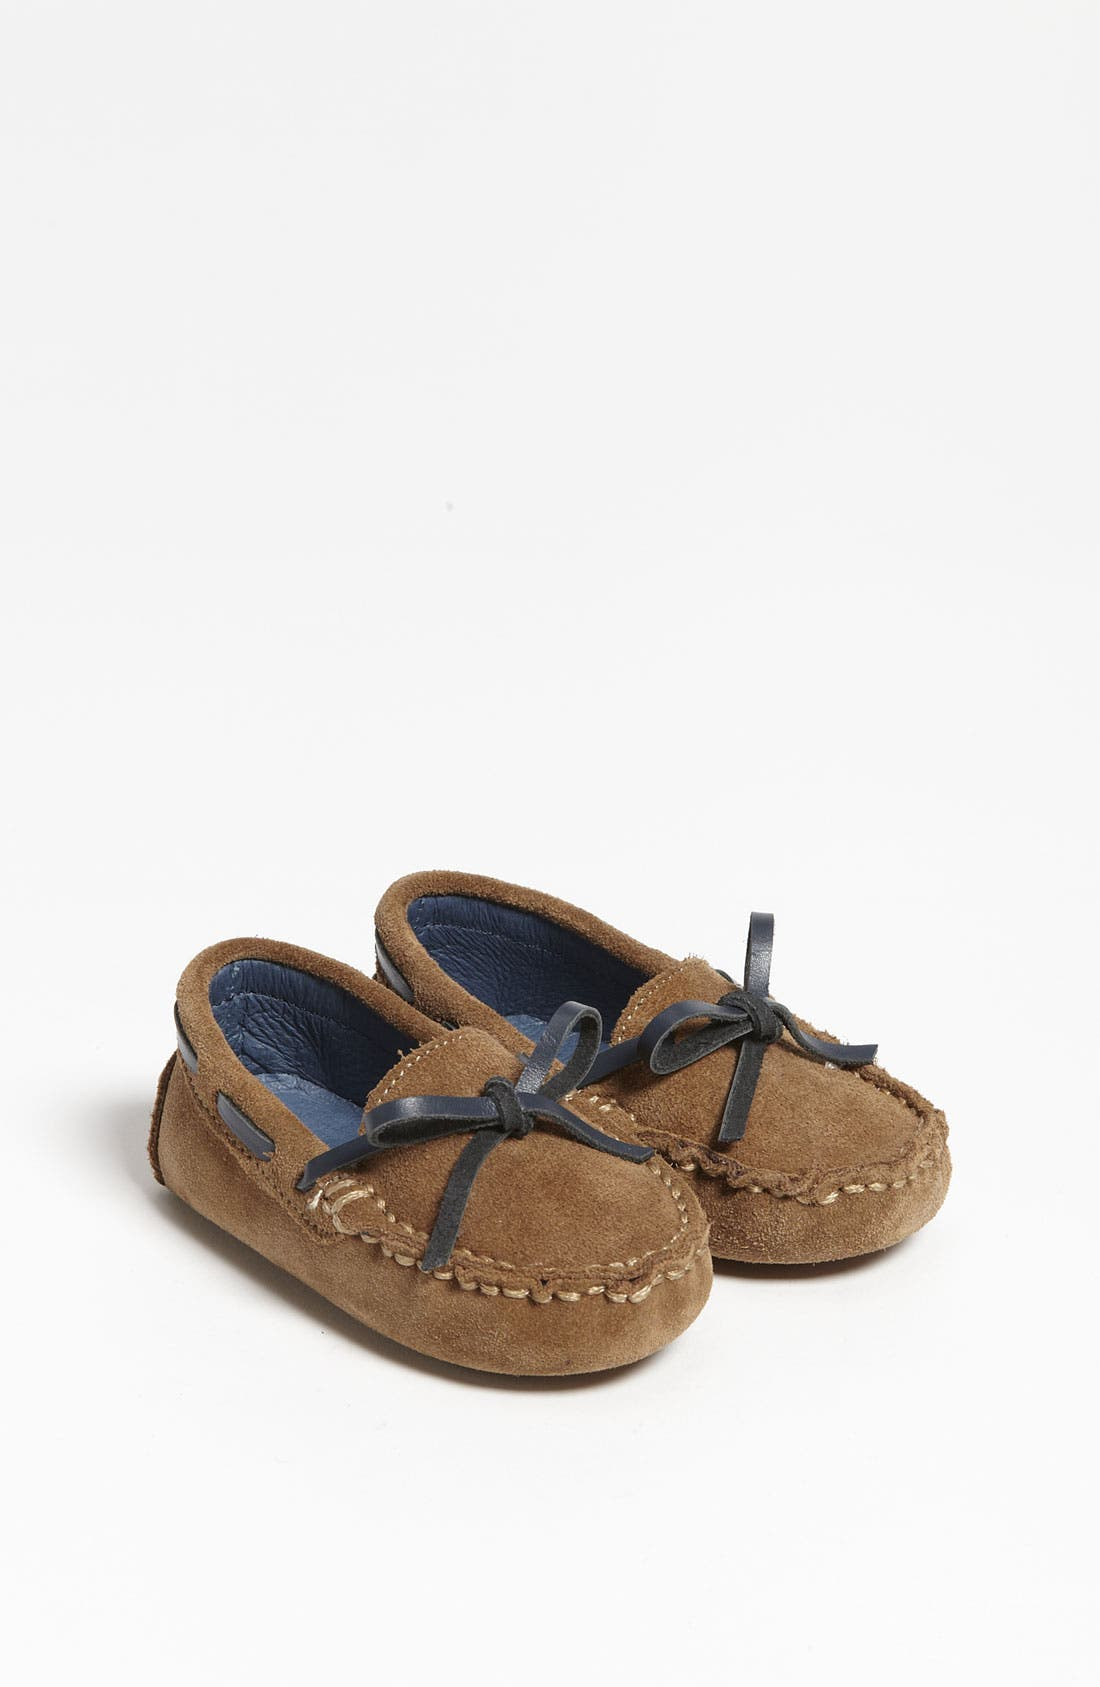 Alternate Image 1 Selected - Cole Haan 'Mini' Driver Moccasin (Baby)